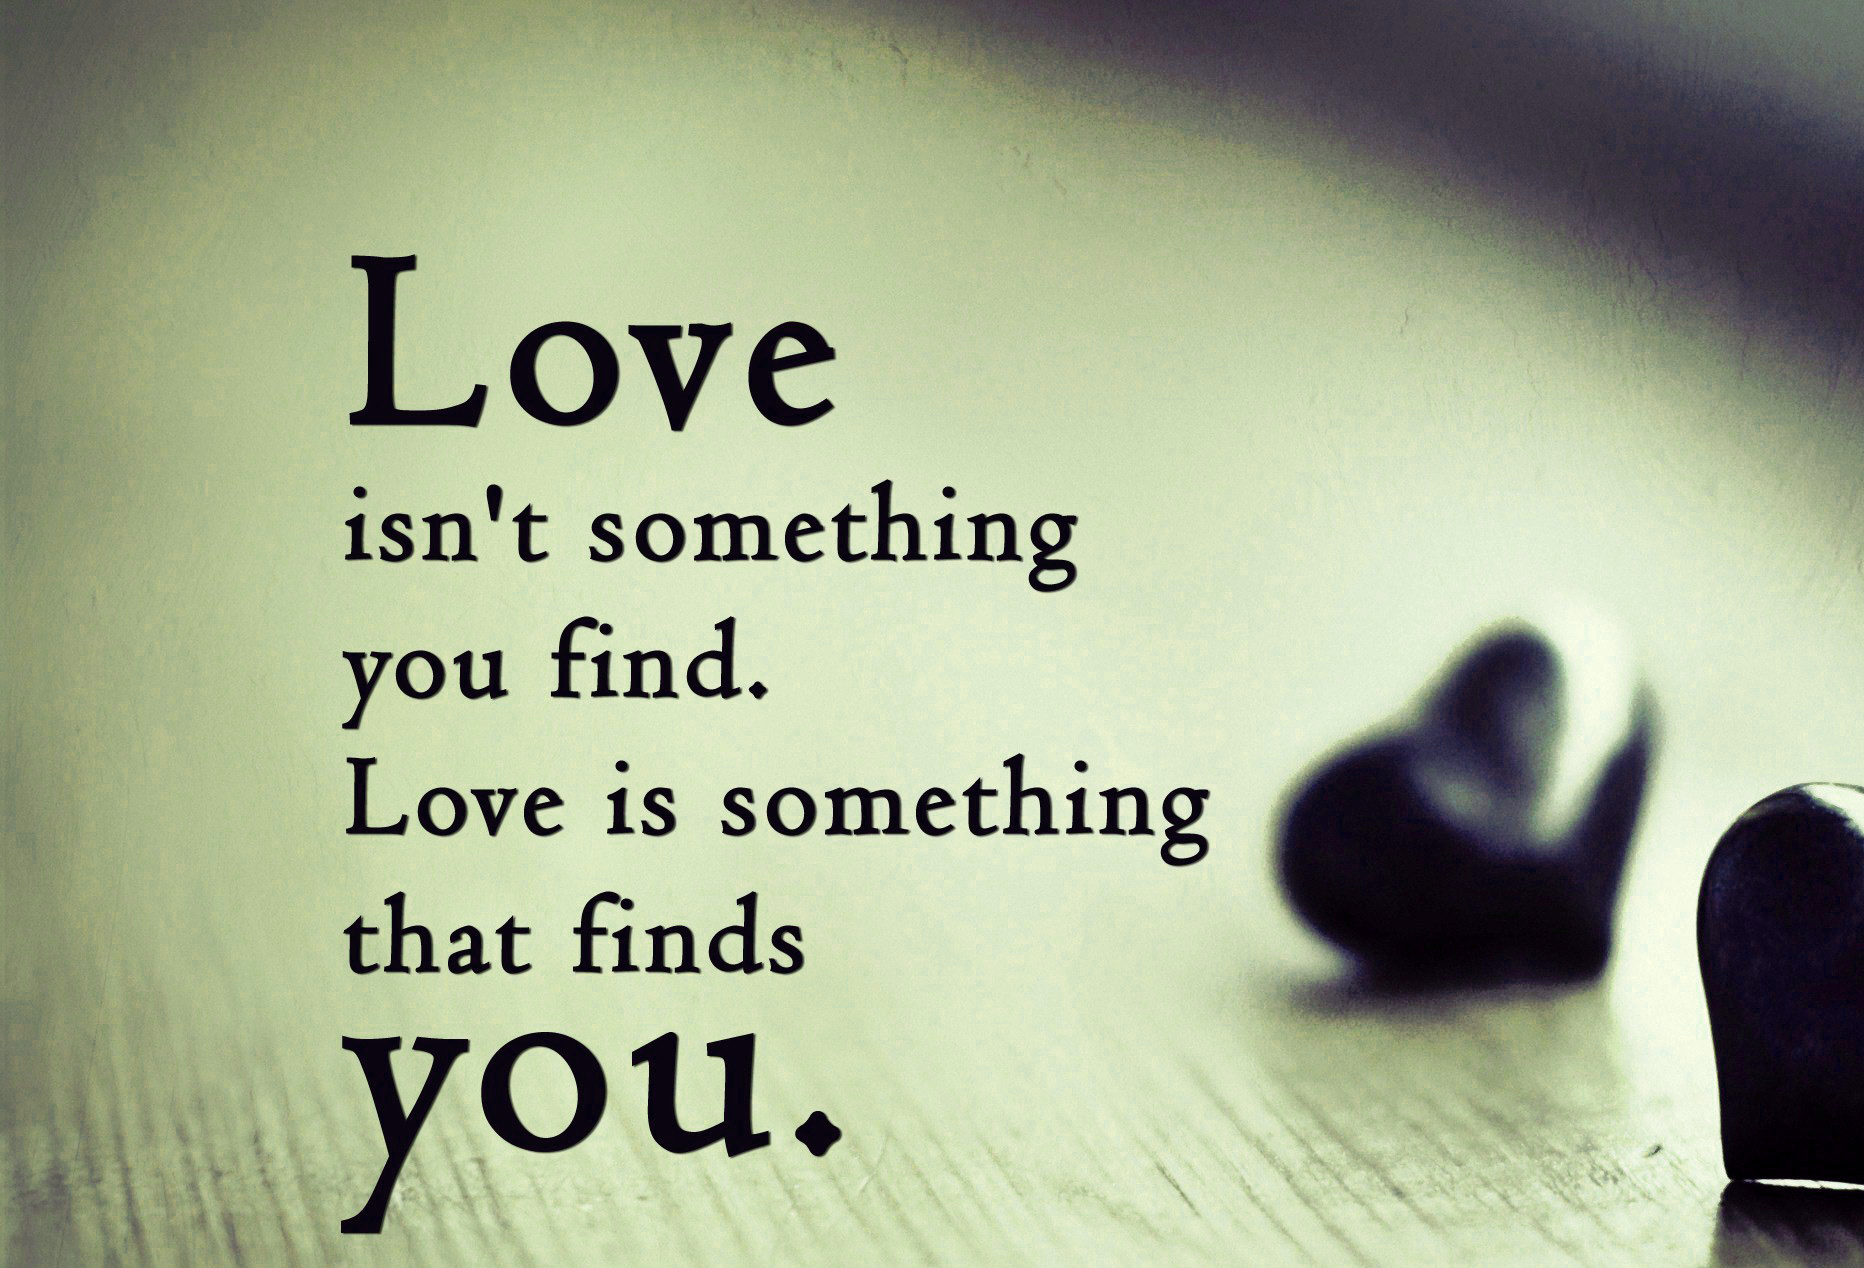 awesome love quotes for whatsapp dp24 Copy 2 Copy